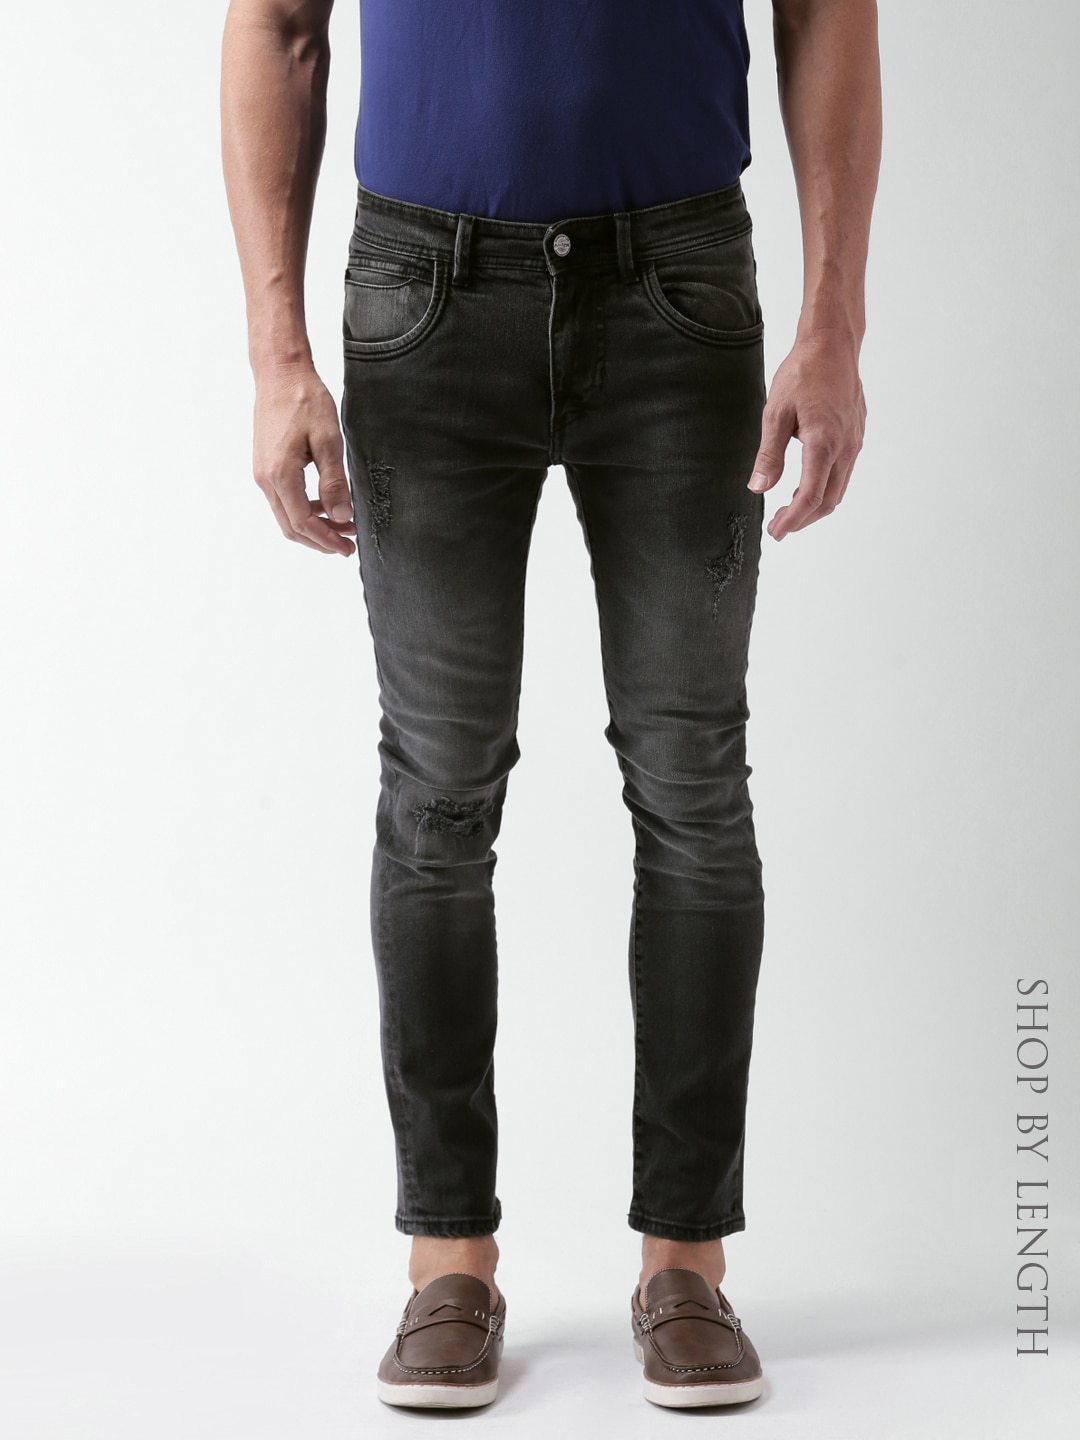 Where to buy skinny jeans for guys online – Global trend jeans models